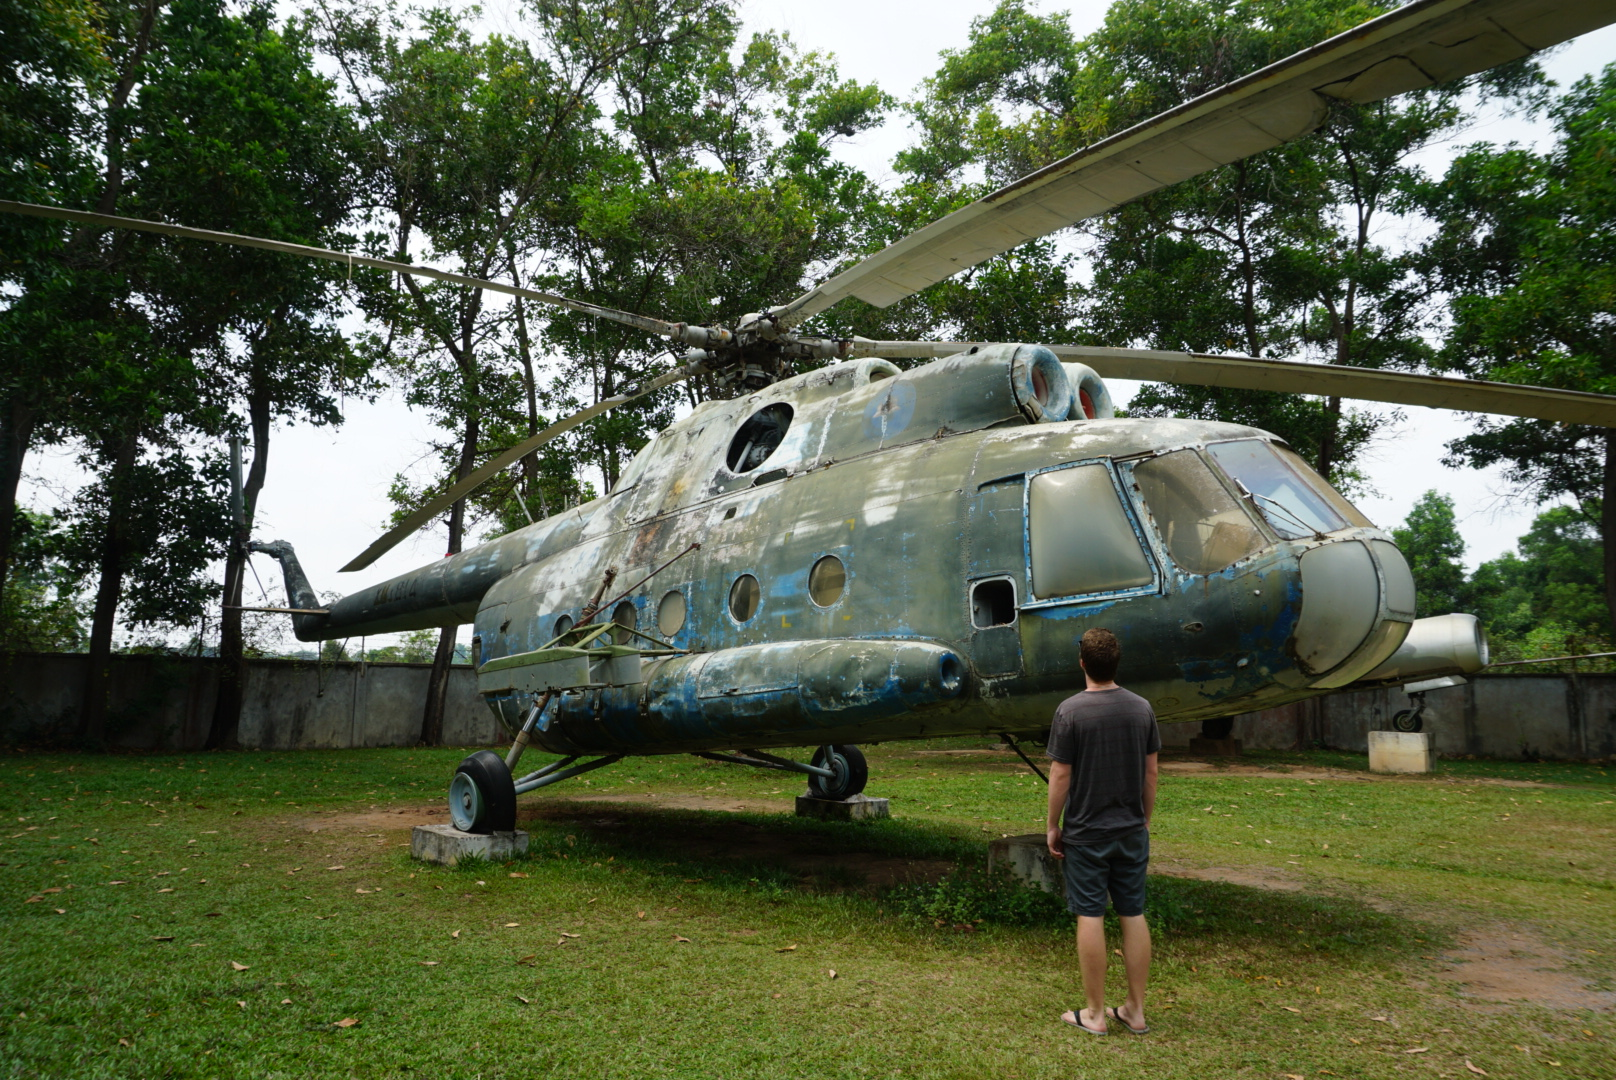 Greg looking at a Helicopter at the Cambodia War Museum.